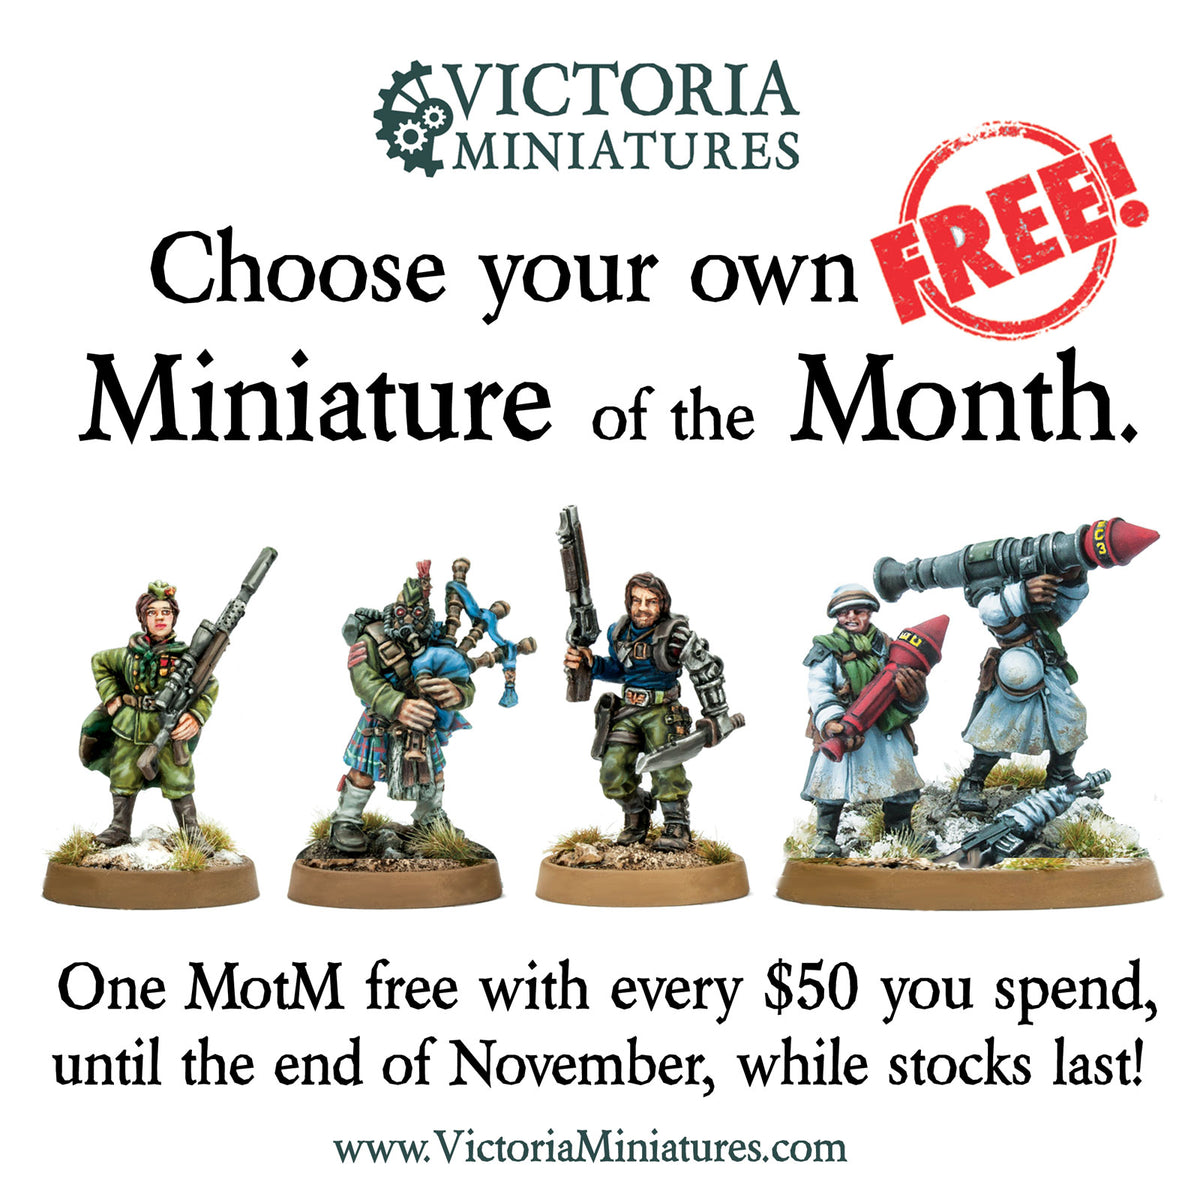 Chose your Free Miniature of the Month.